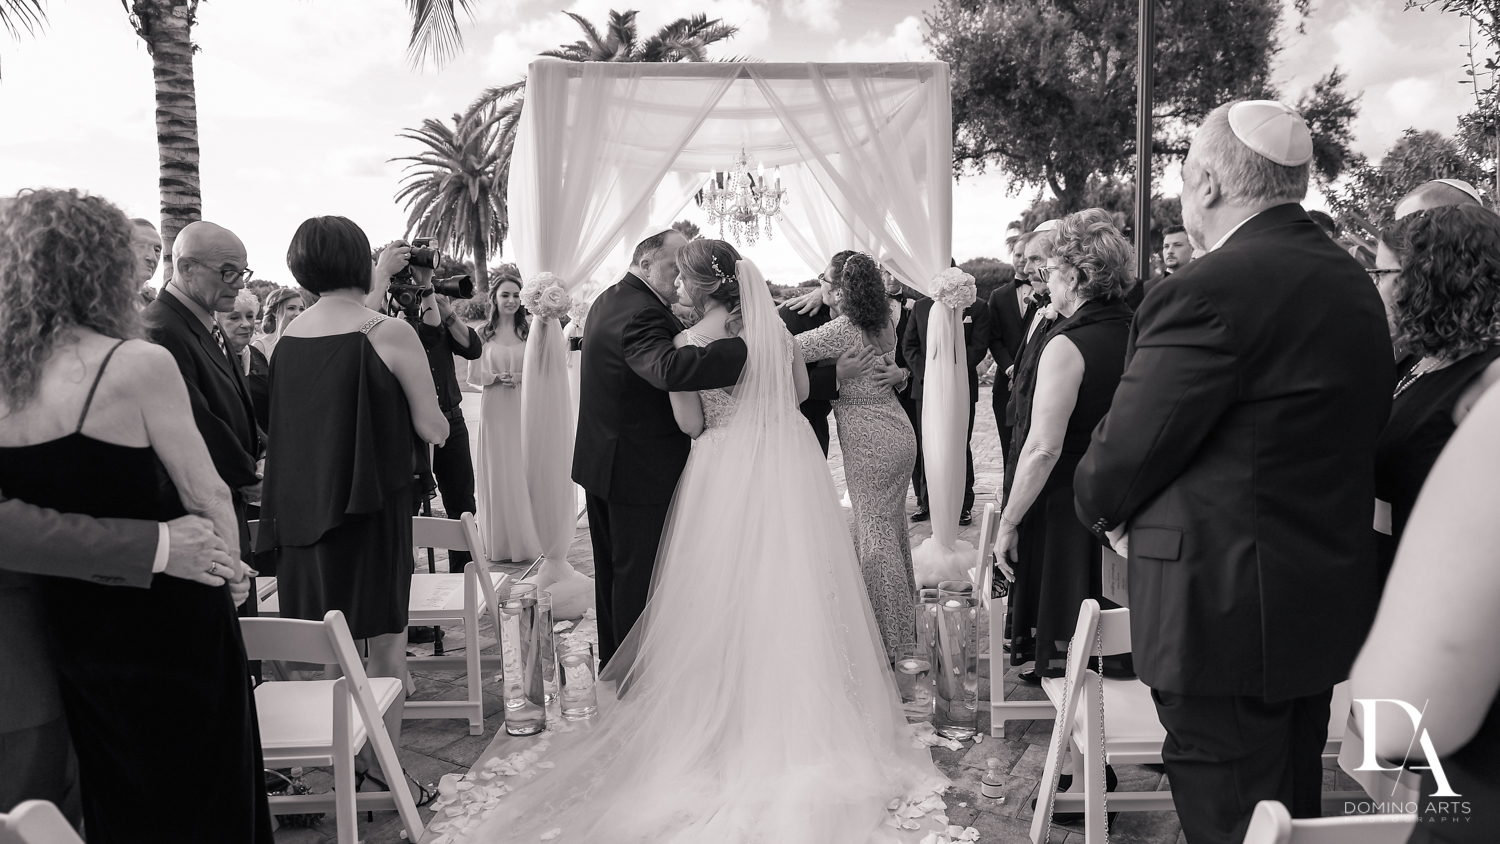 Black and white photography at Romantic Outdoors Wedding at Woodfield Country Club in Boca Raton, Florida by Domino Arts Photography